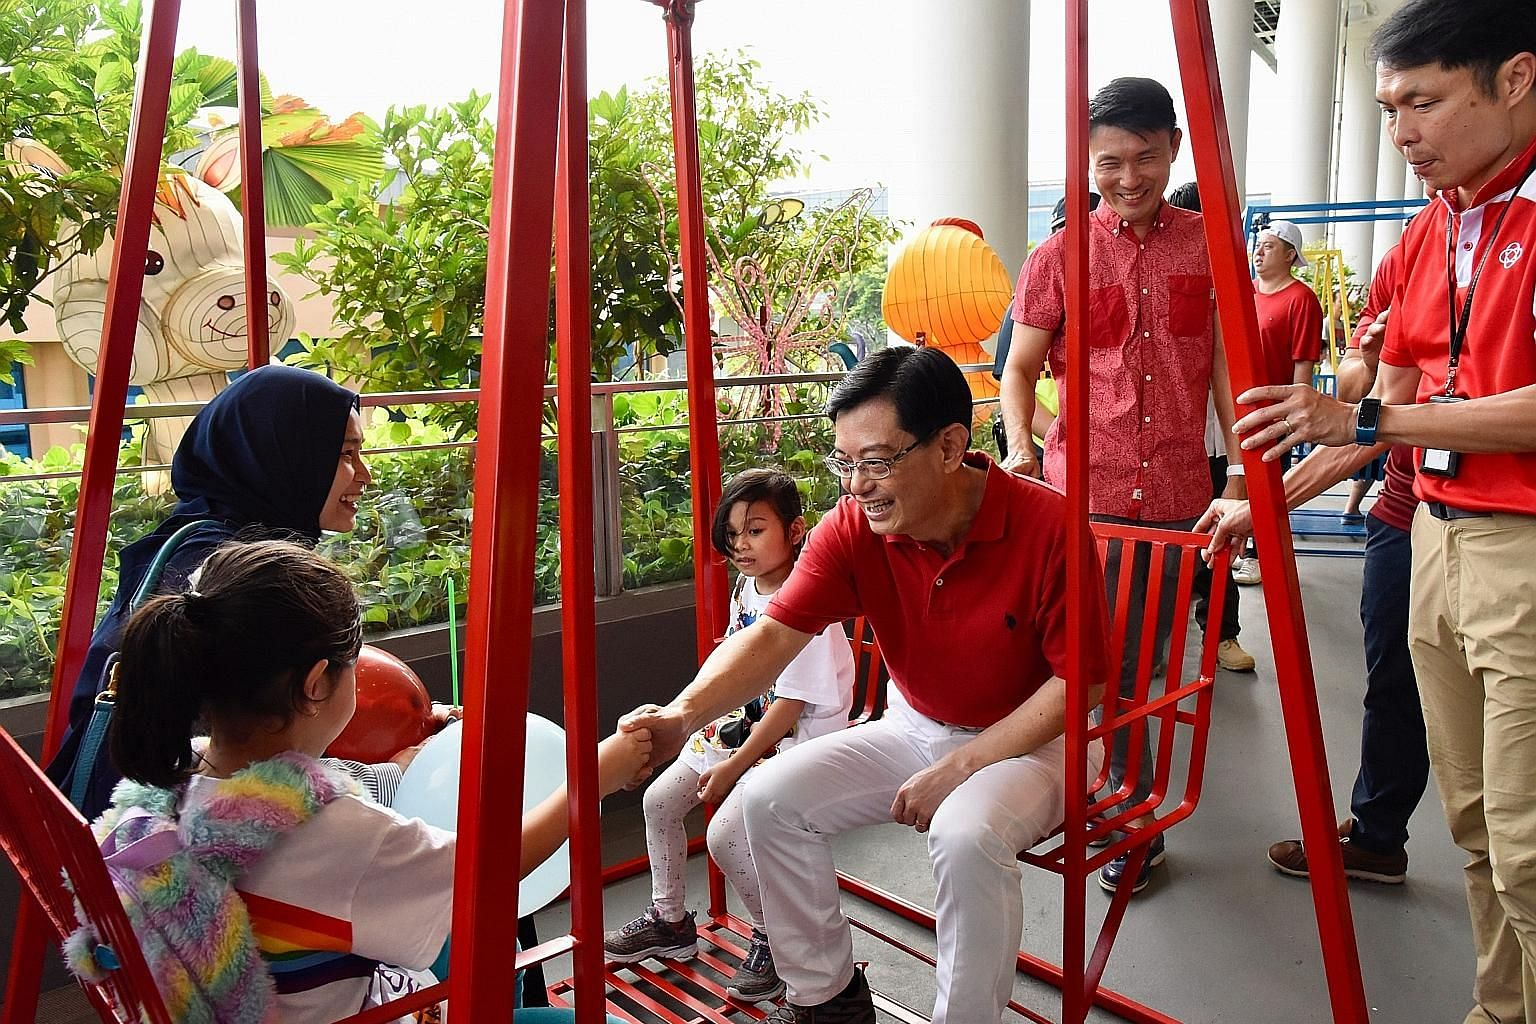 Finance Minister and Tampines GRC MP Heng Swee Keat greeting a family on a swing at the All-Inclusive Playground in Our Tampines Hub yesterday. Rock climbers attempting to complete a 53km rock wall climb yesterday at the Rock School in Our Tampines H